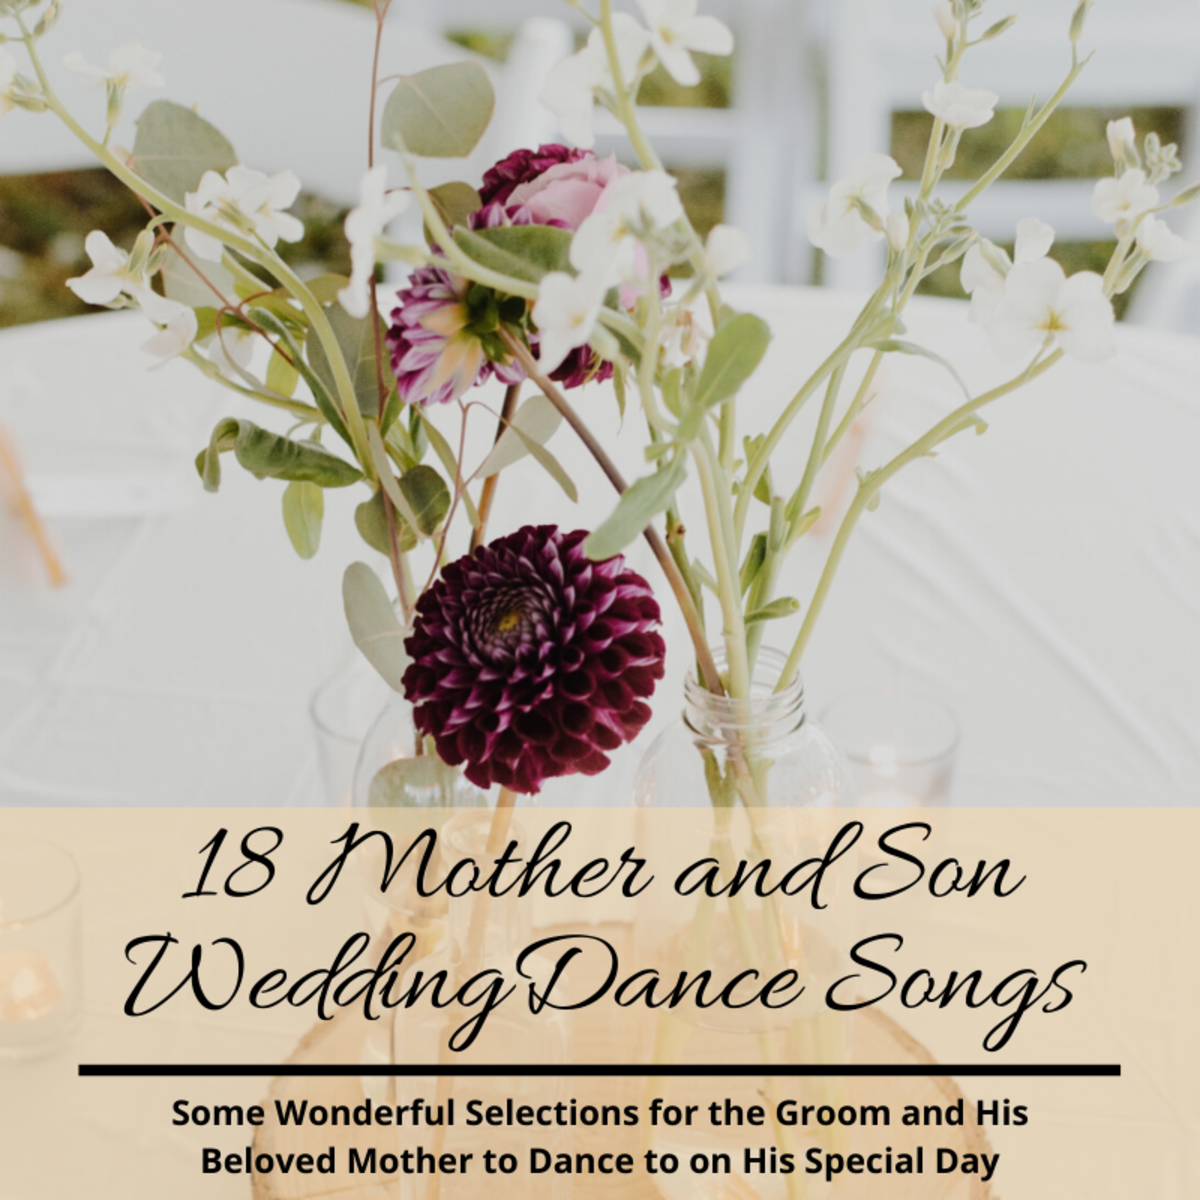 Good Mother Son Dance Songs: The 18 Best Mother-and-Son Wedding Dance Songs